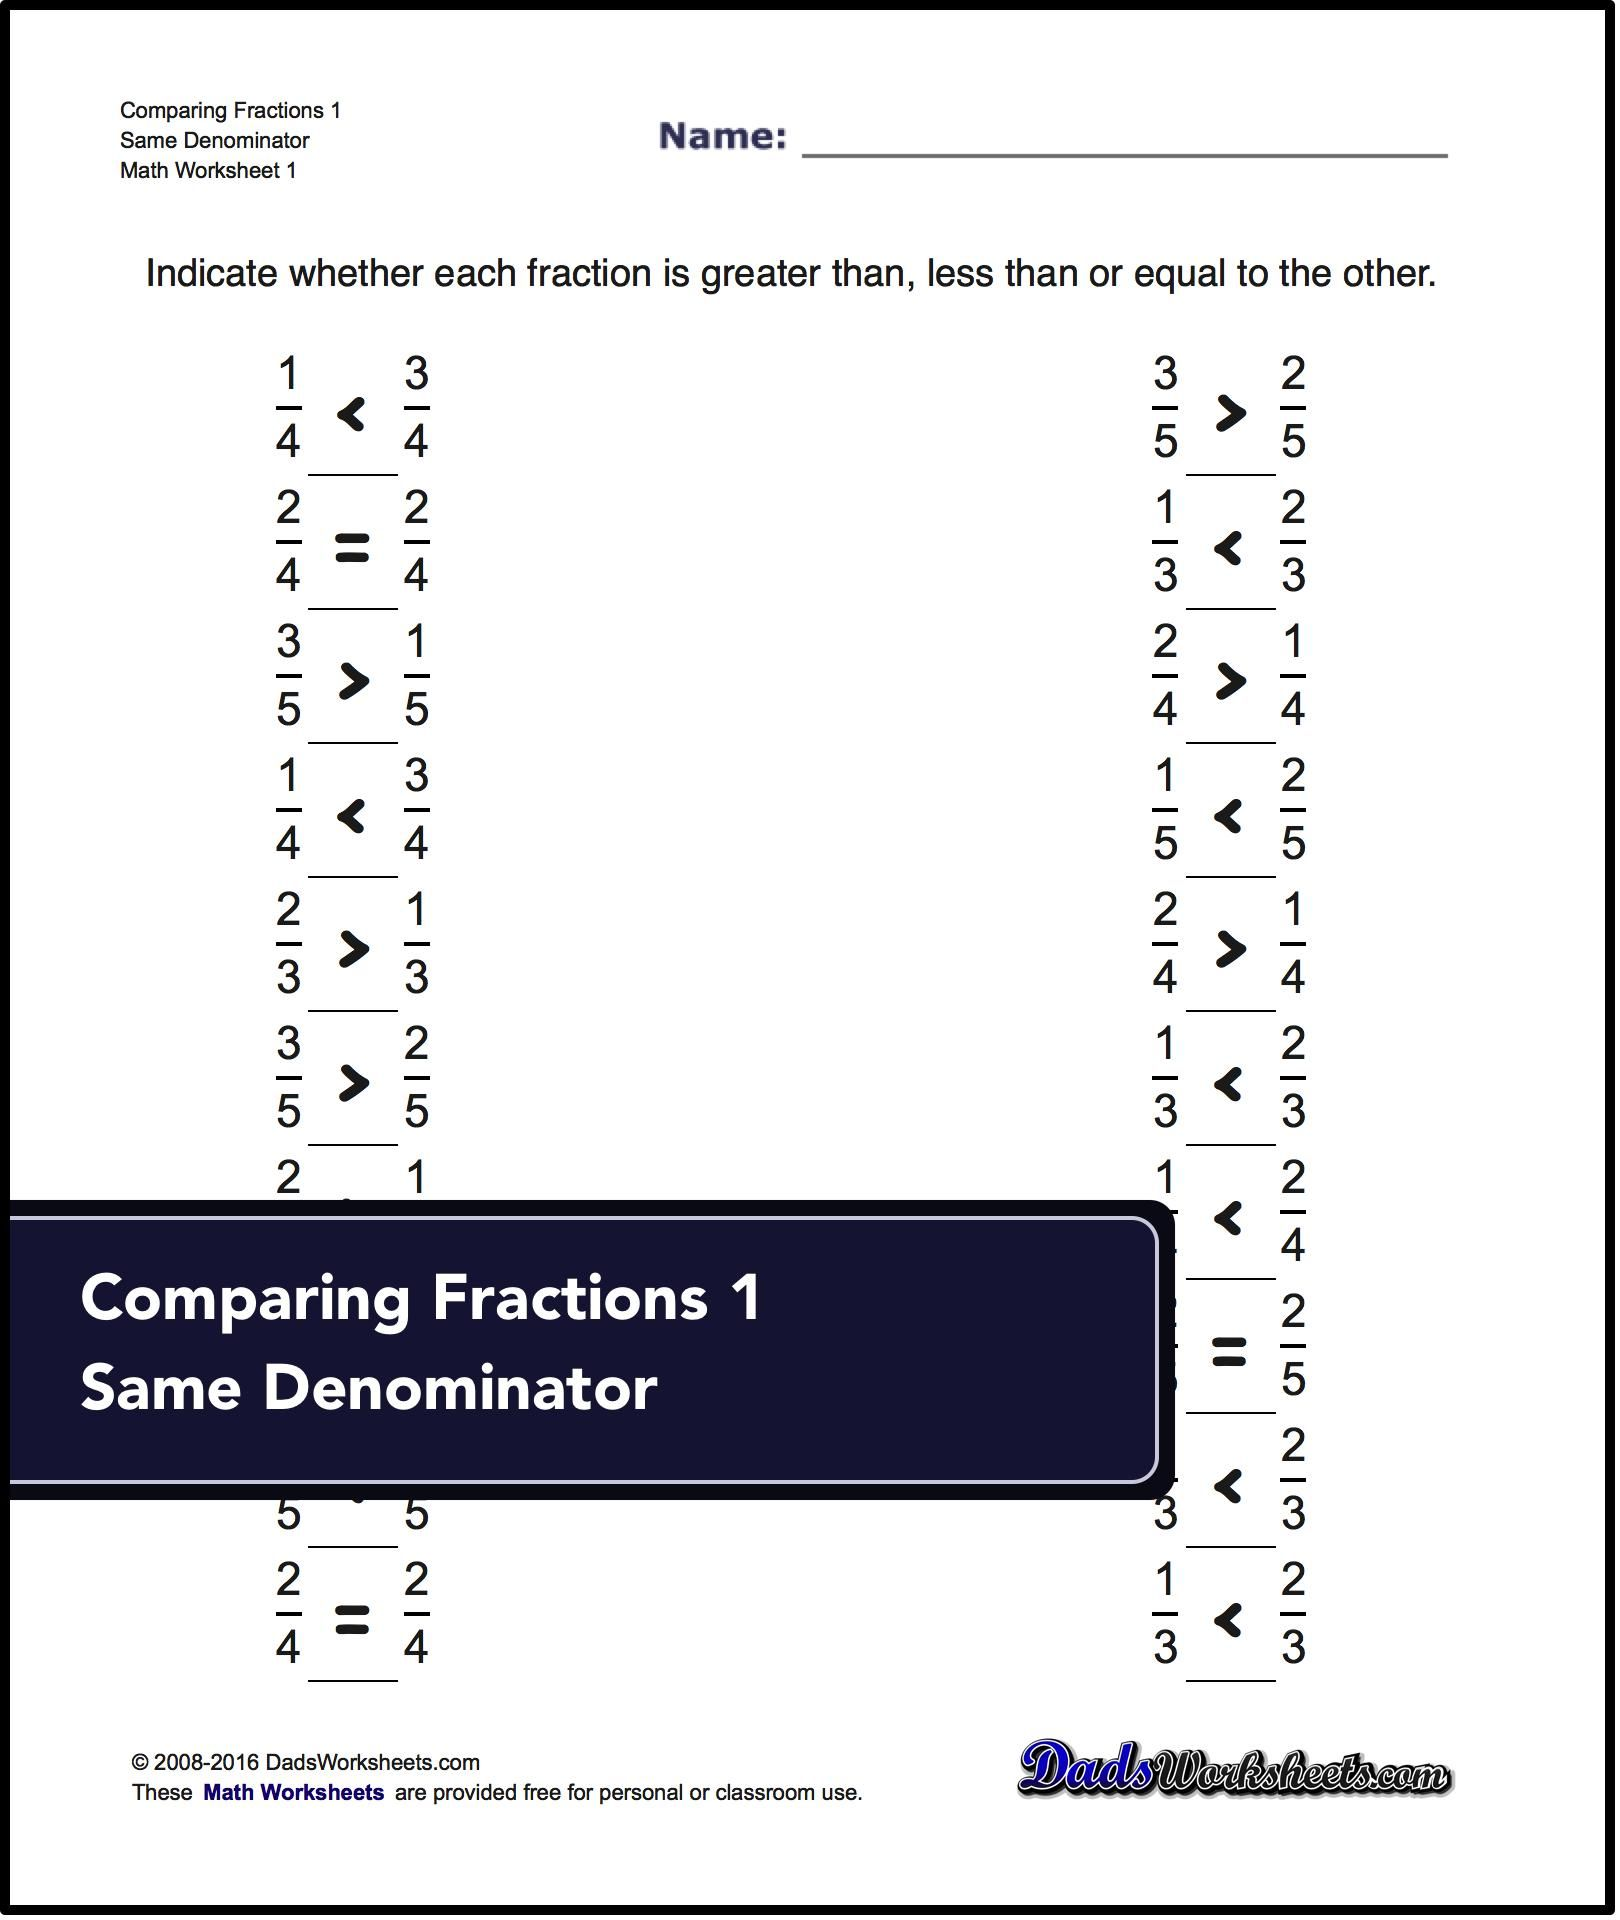 worksheet Compare Fractions Worksheets understand how to compare fractions with these comparing fraction worksheets a really good practice for